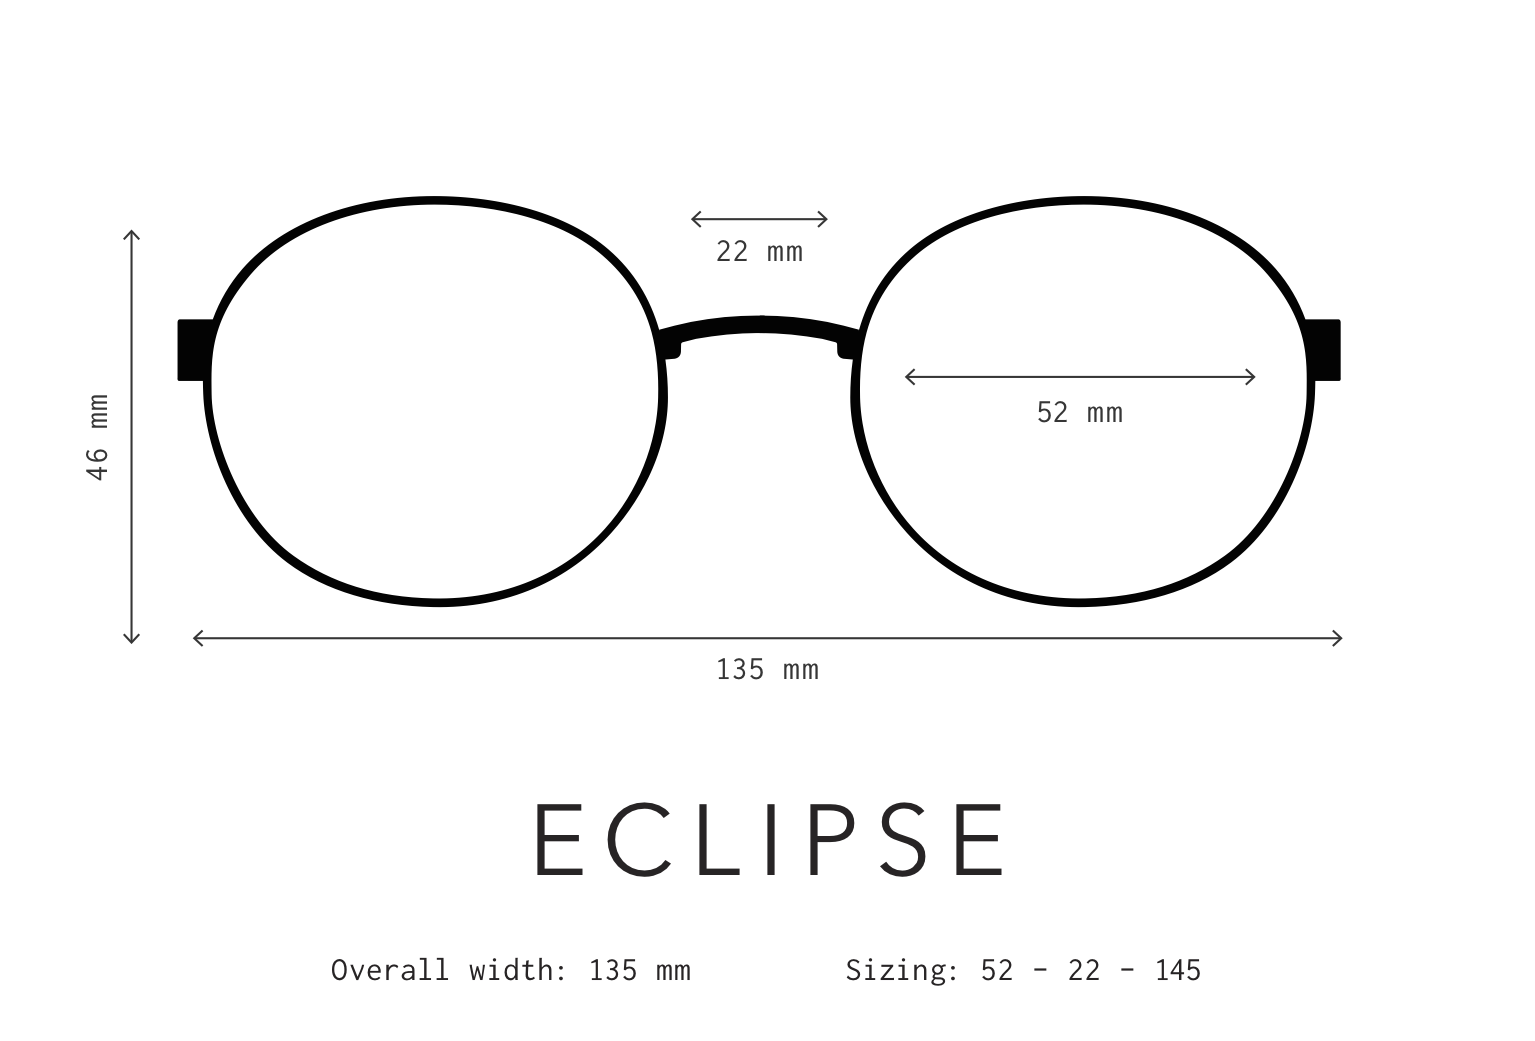 Eclipse Sunglasses Fit Information